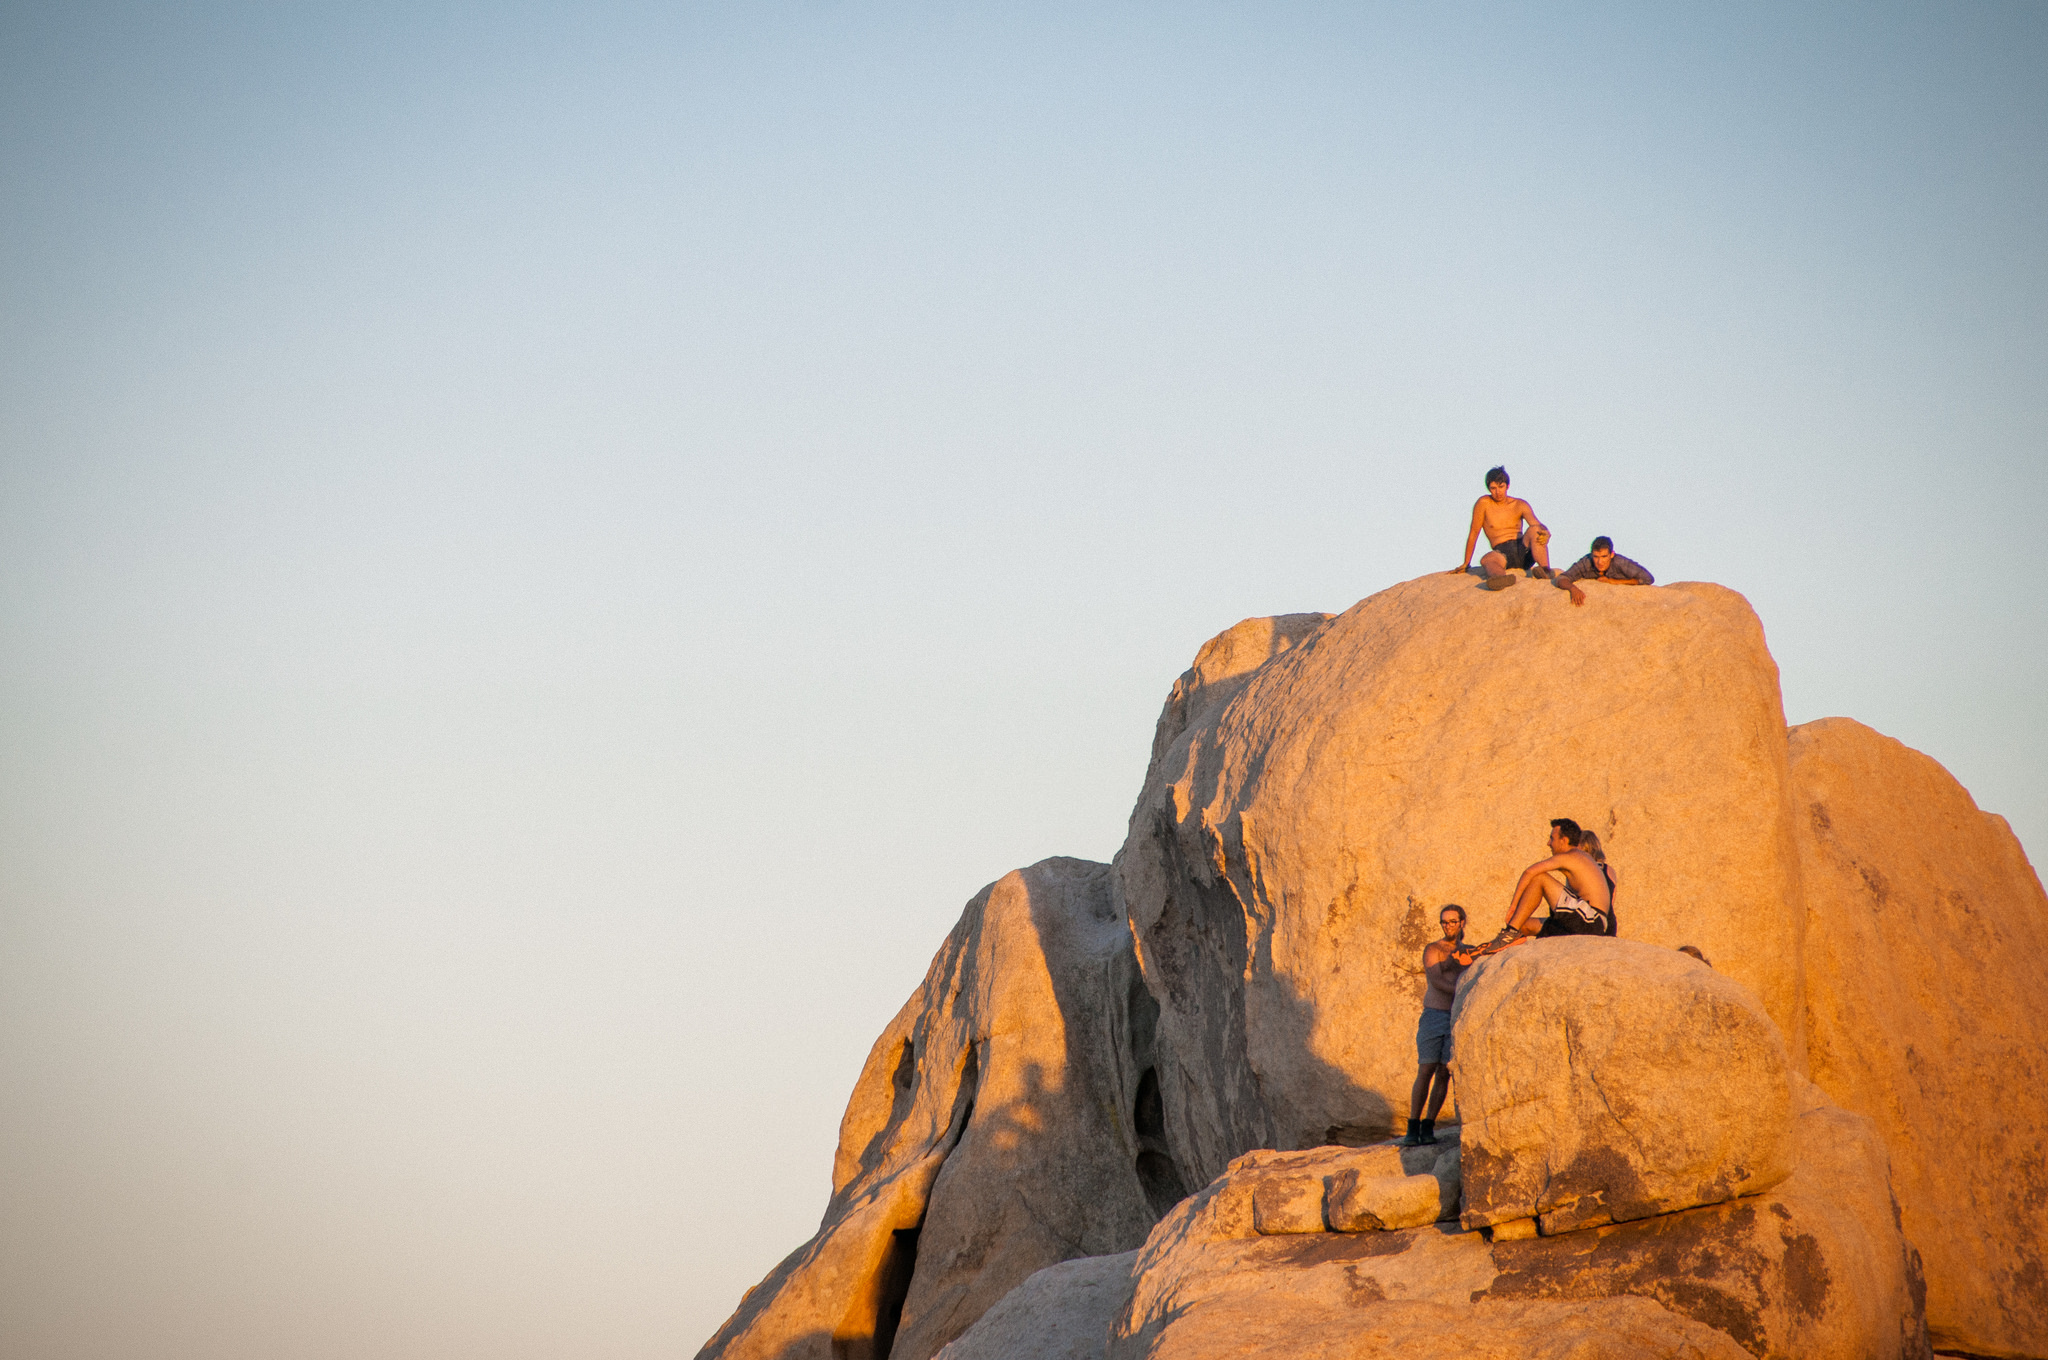 Took a trip out to Joshua Tree for my love's birthday...